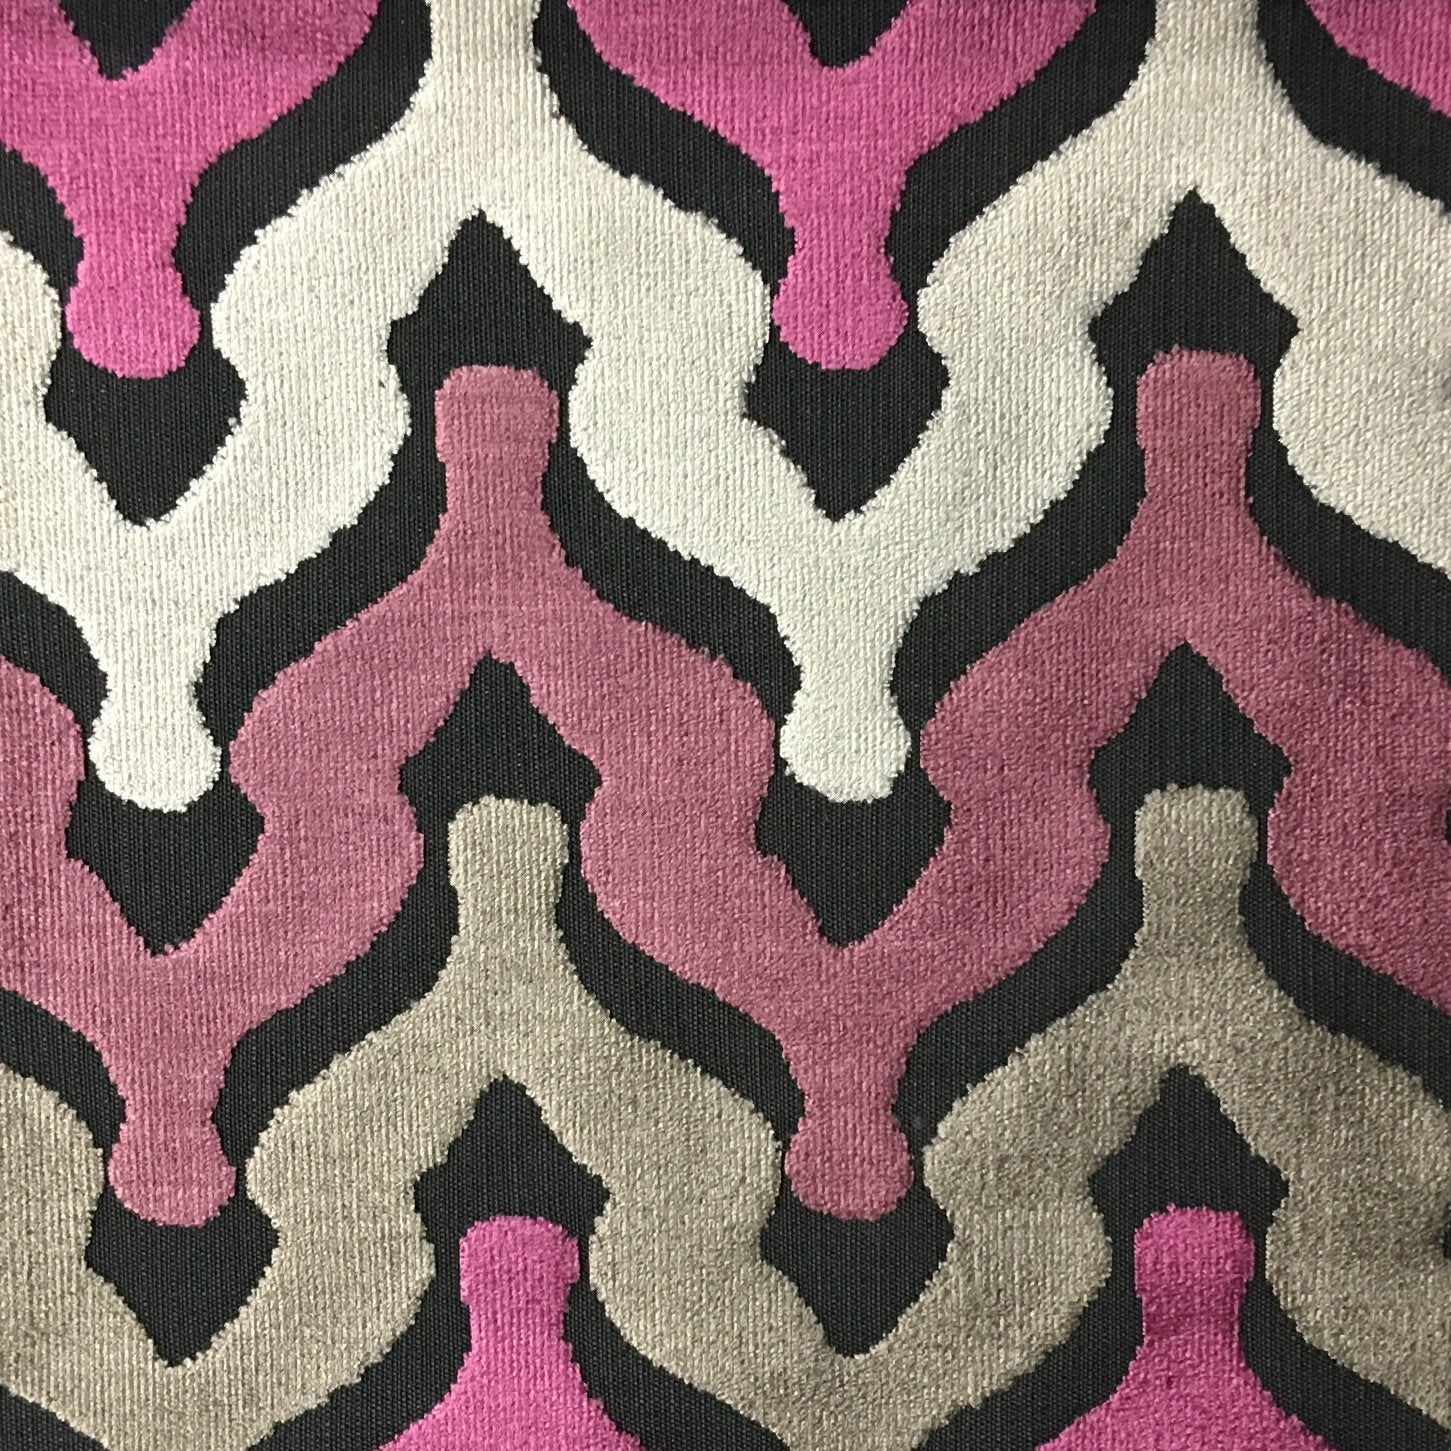 Chevron print fabric by the yard -  Leicester Cut Velvet Fabric Drapery Upholstery Fabric By The Yard Available In 13